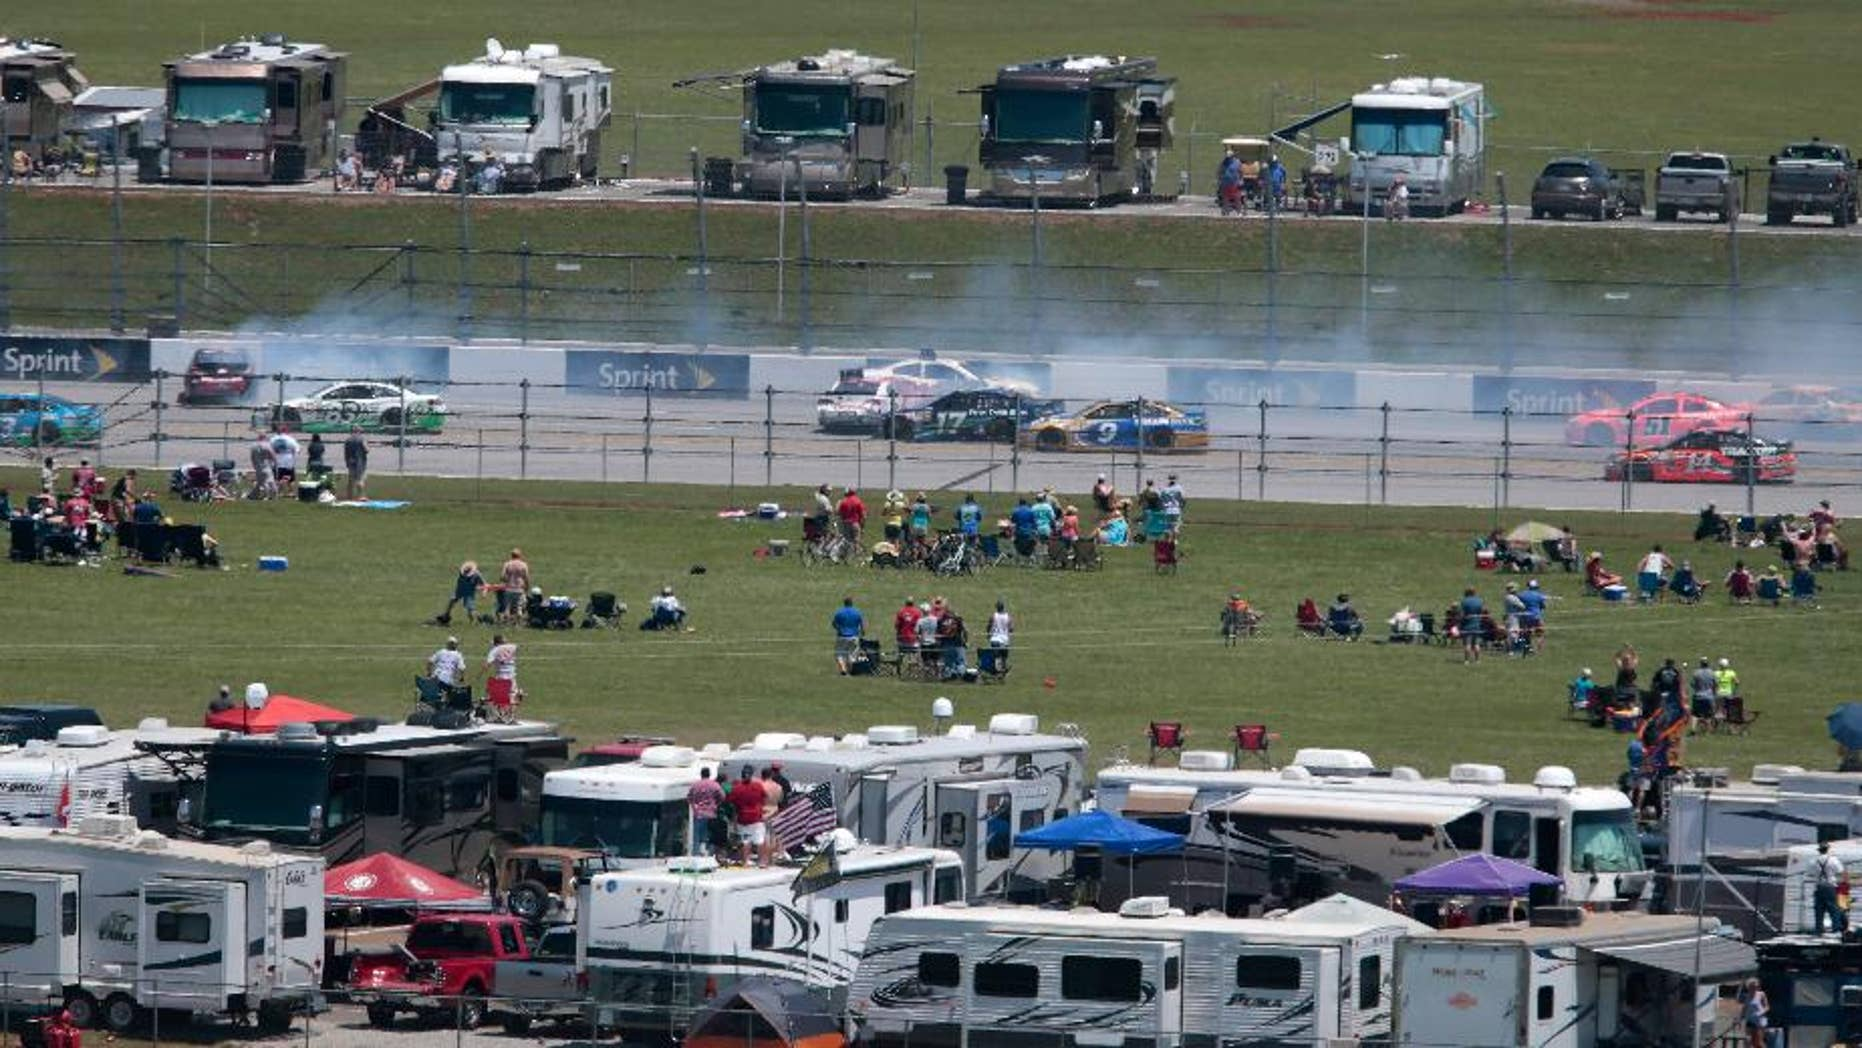 Fans watch a multi-car crash on the back straight during the Talladega 500 NASCAR Sprint Cup Series auto race at Talladega Superspeedway, Sunday, May 3, 2015, in Talladega, Ala. (AP Photo/Butch Dill)